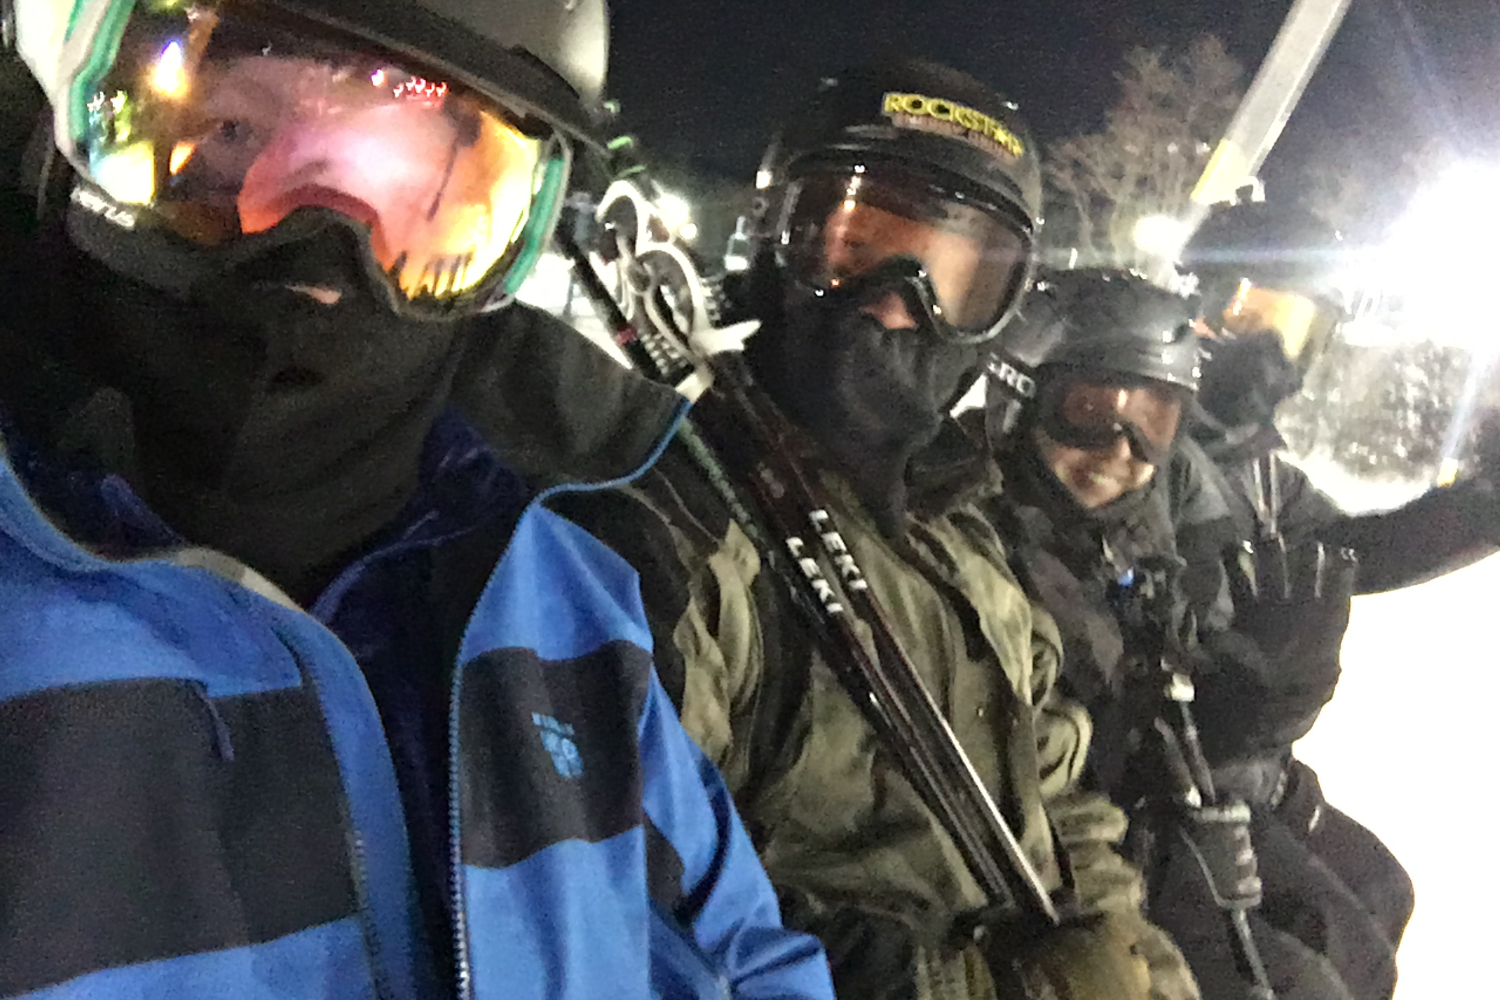 riding chairlift while night skiing wearing ski goggles